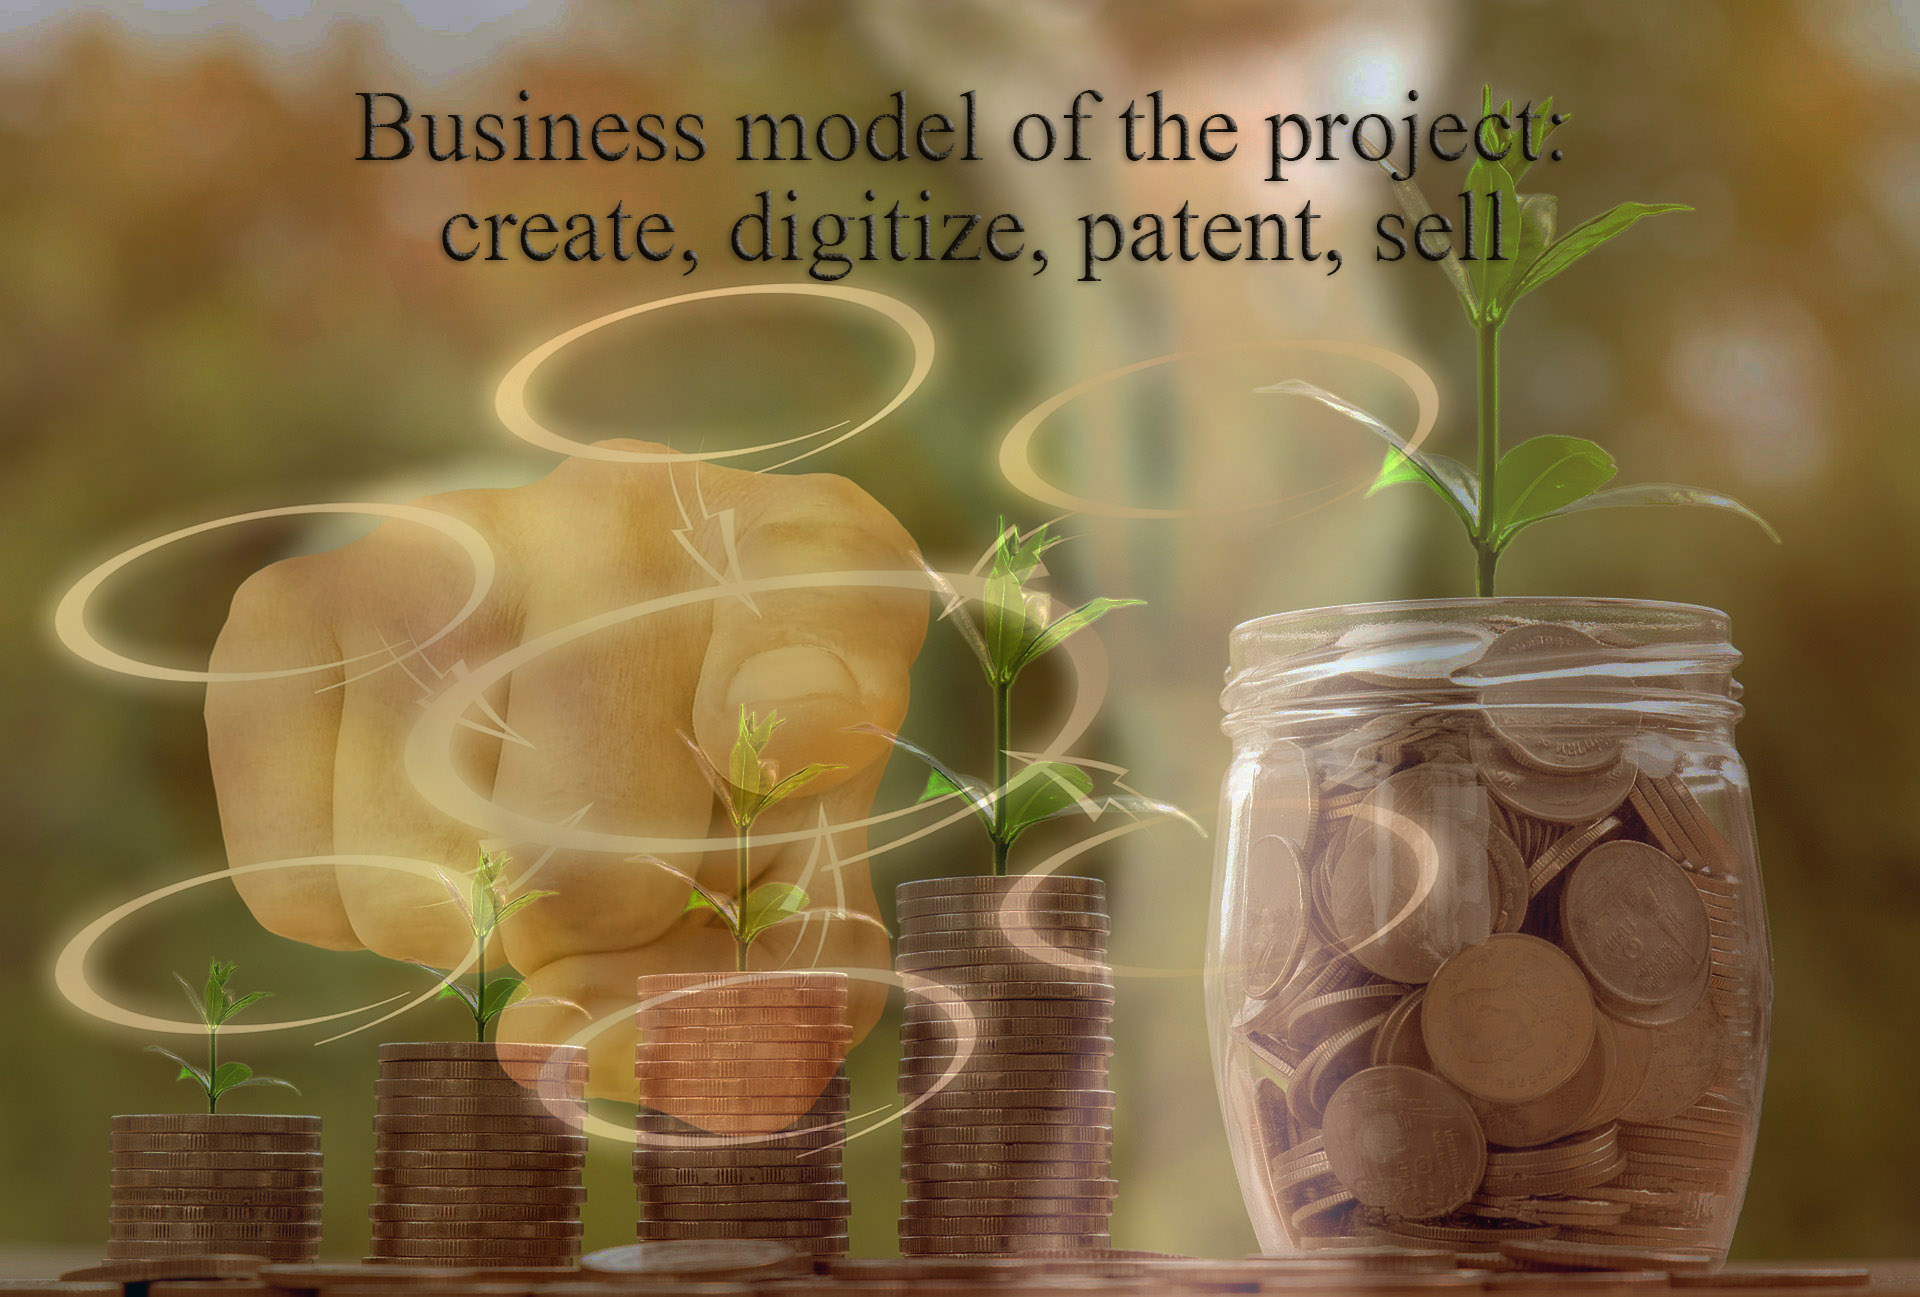 BUSINESS MODEL PROJECT FANTASY